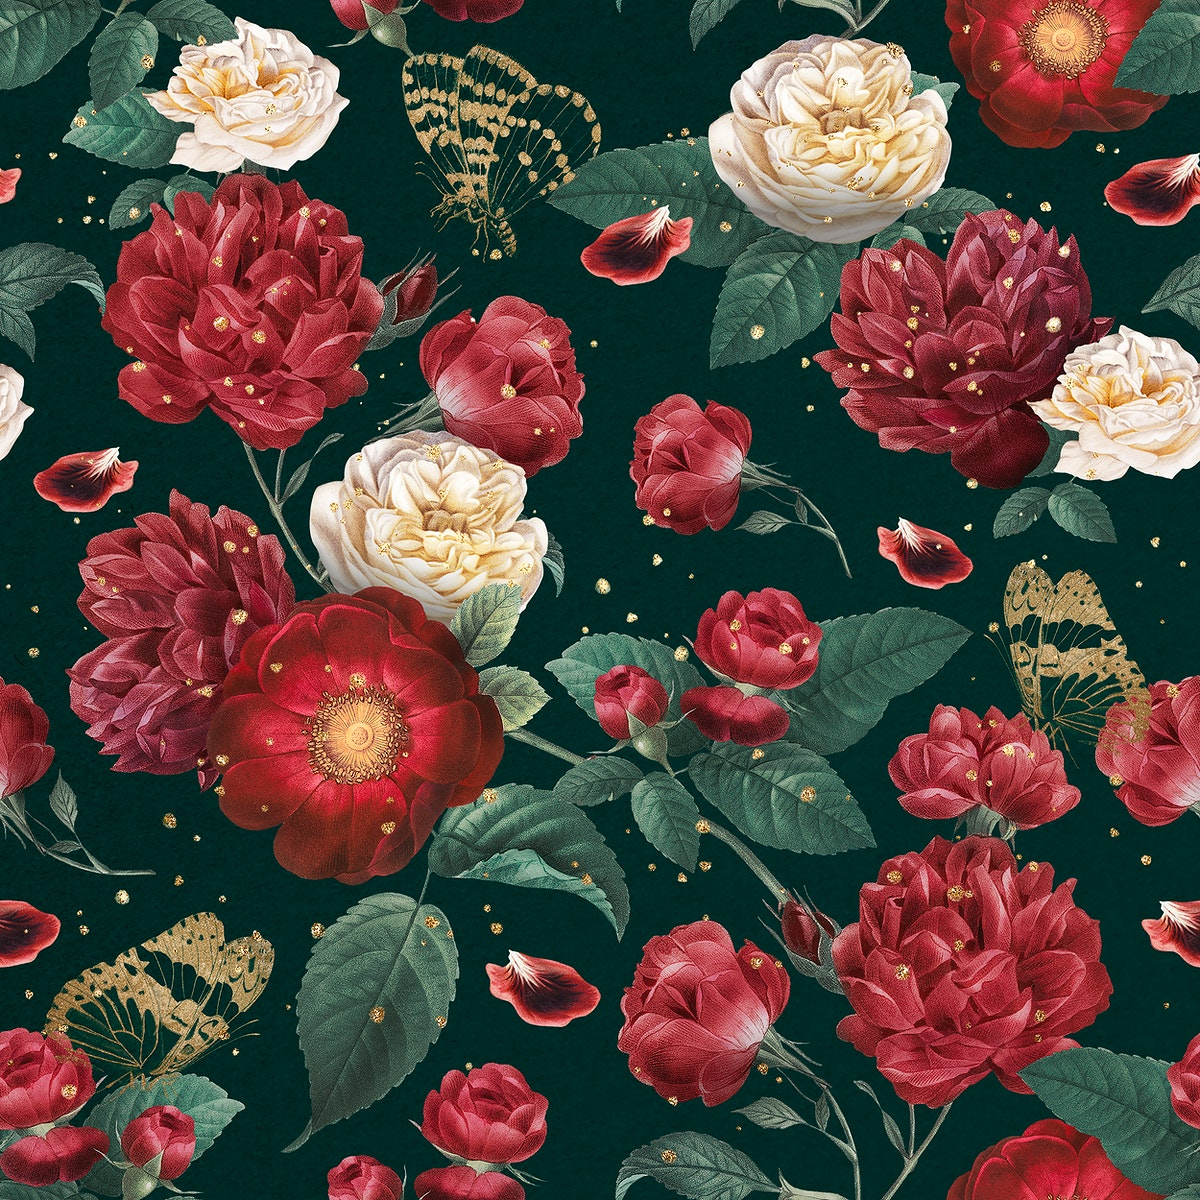 Classic romantic red roses floral pattern watercolor illustration